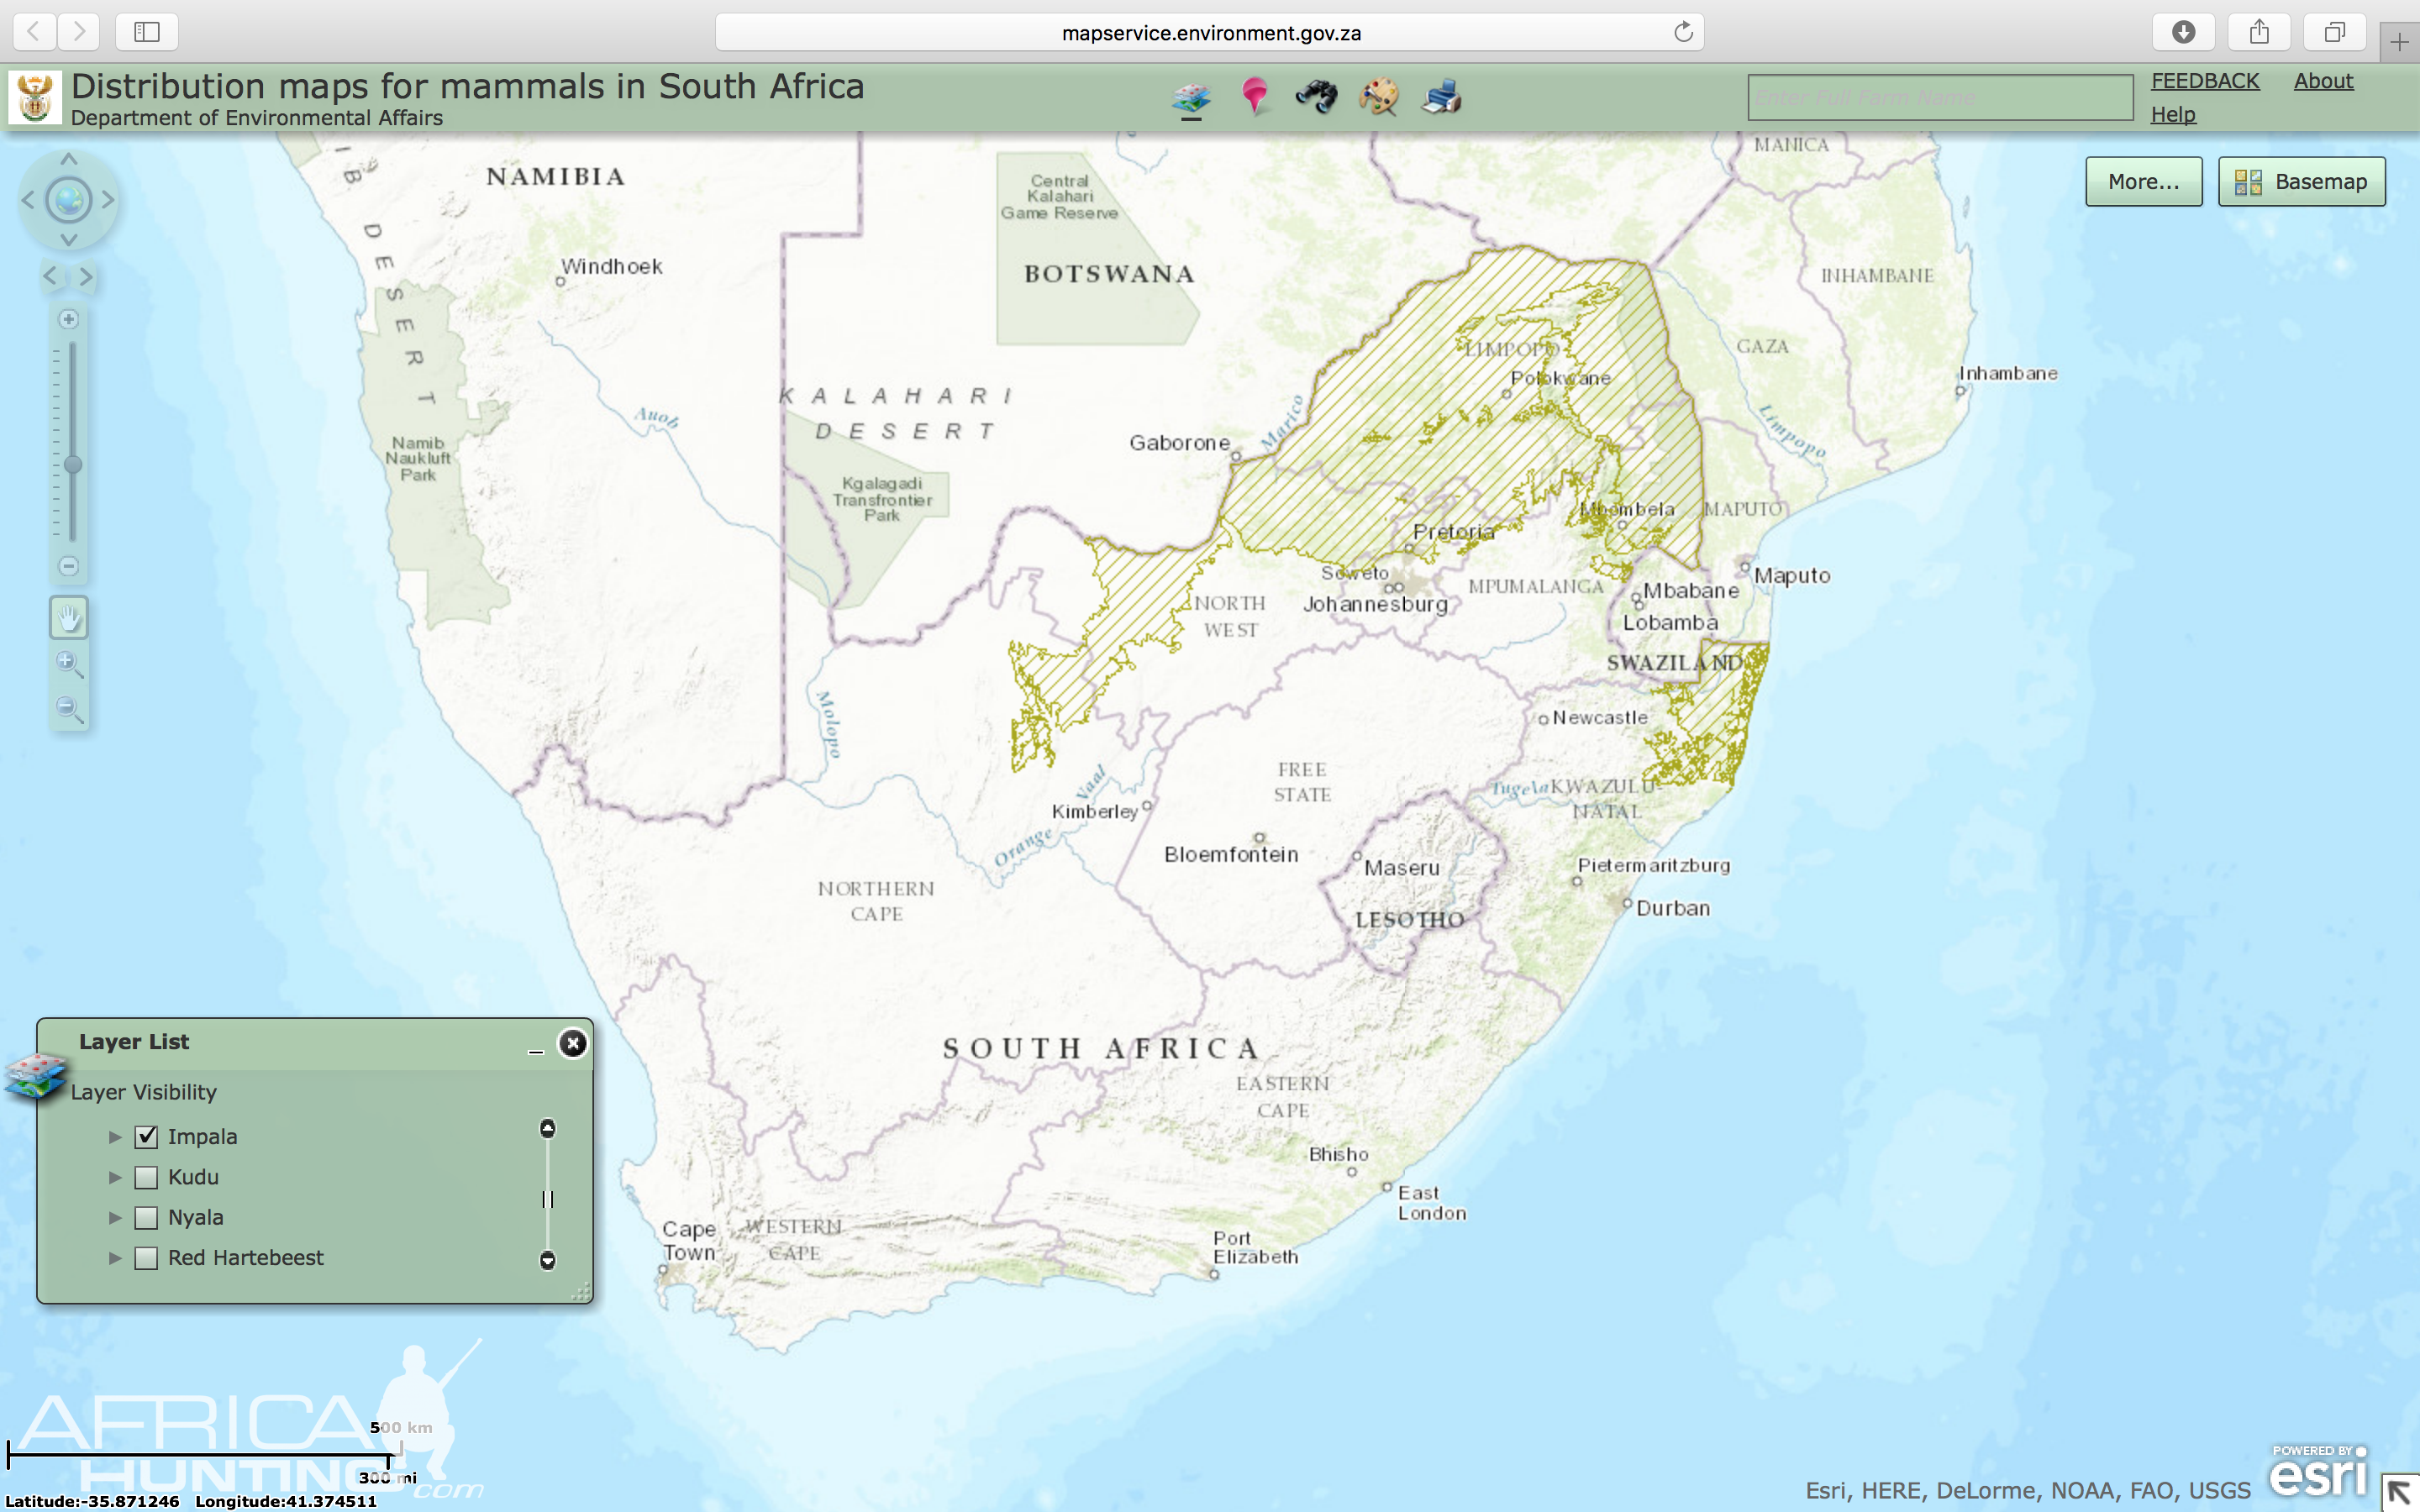 impala-distribution-map-south-africa.png